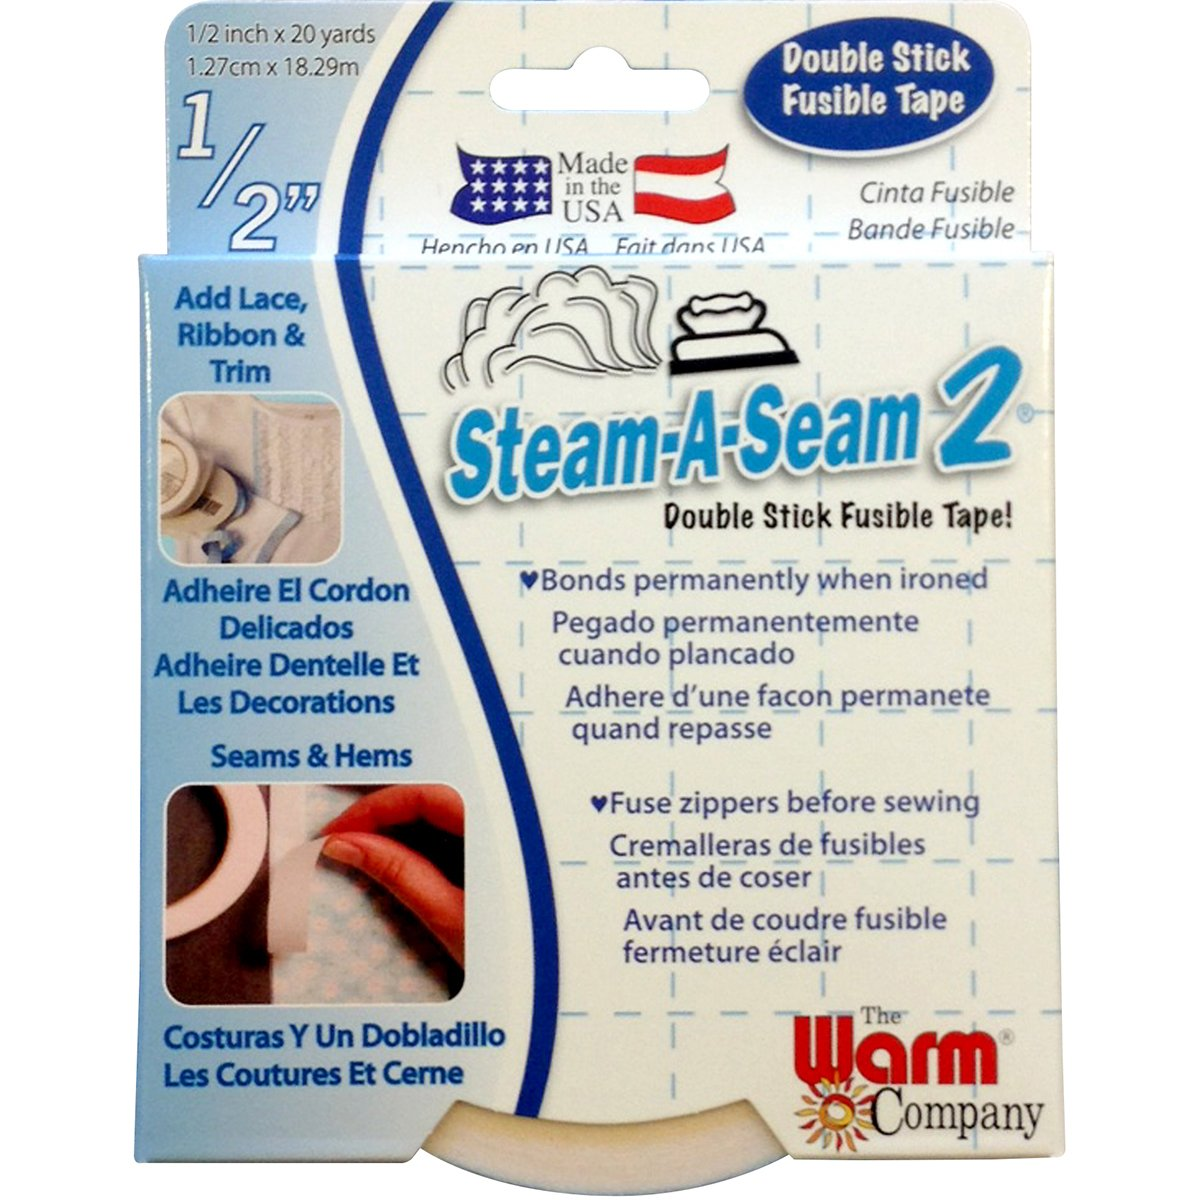 Warm Company Steam-A-Seam 2 Double Stick Fusible Tape 1//2X20 Yards